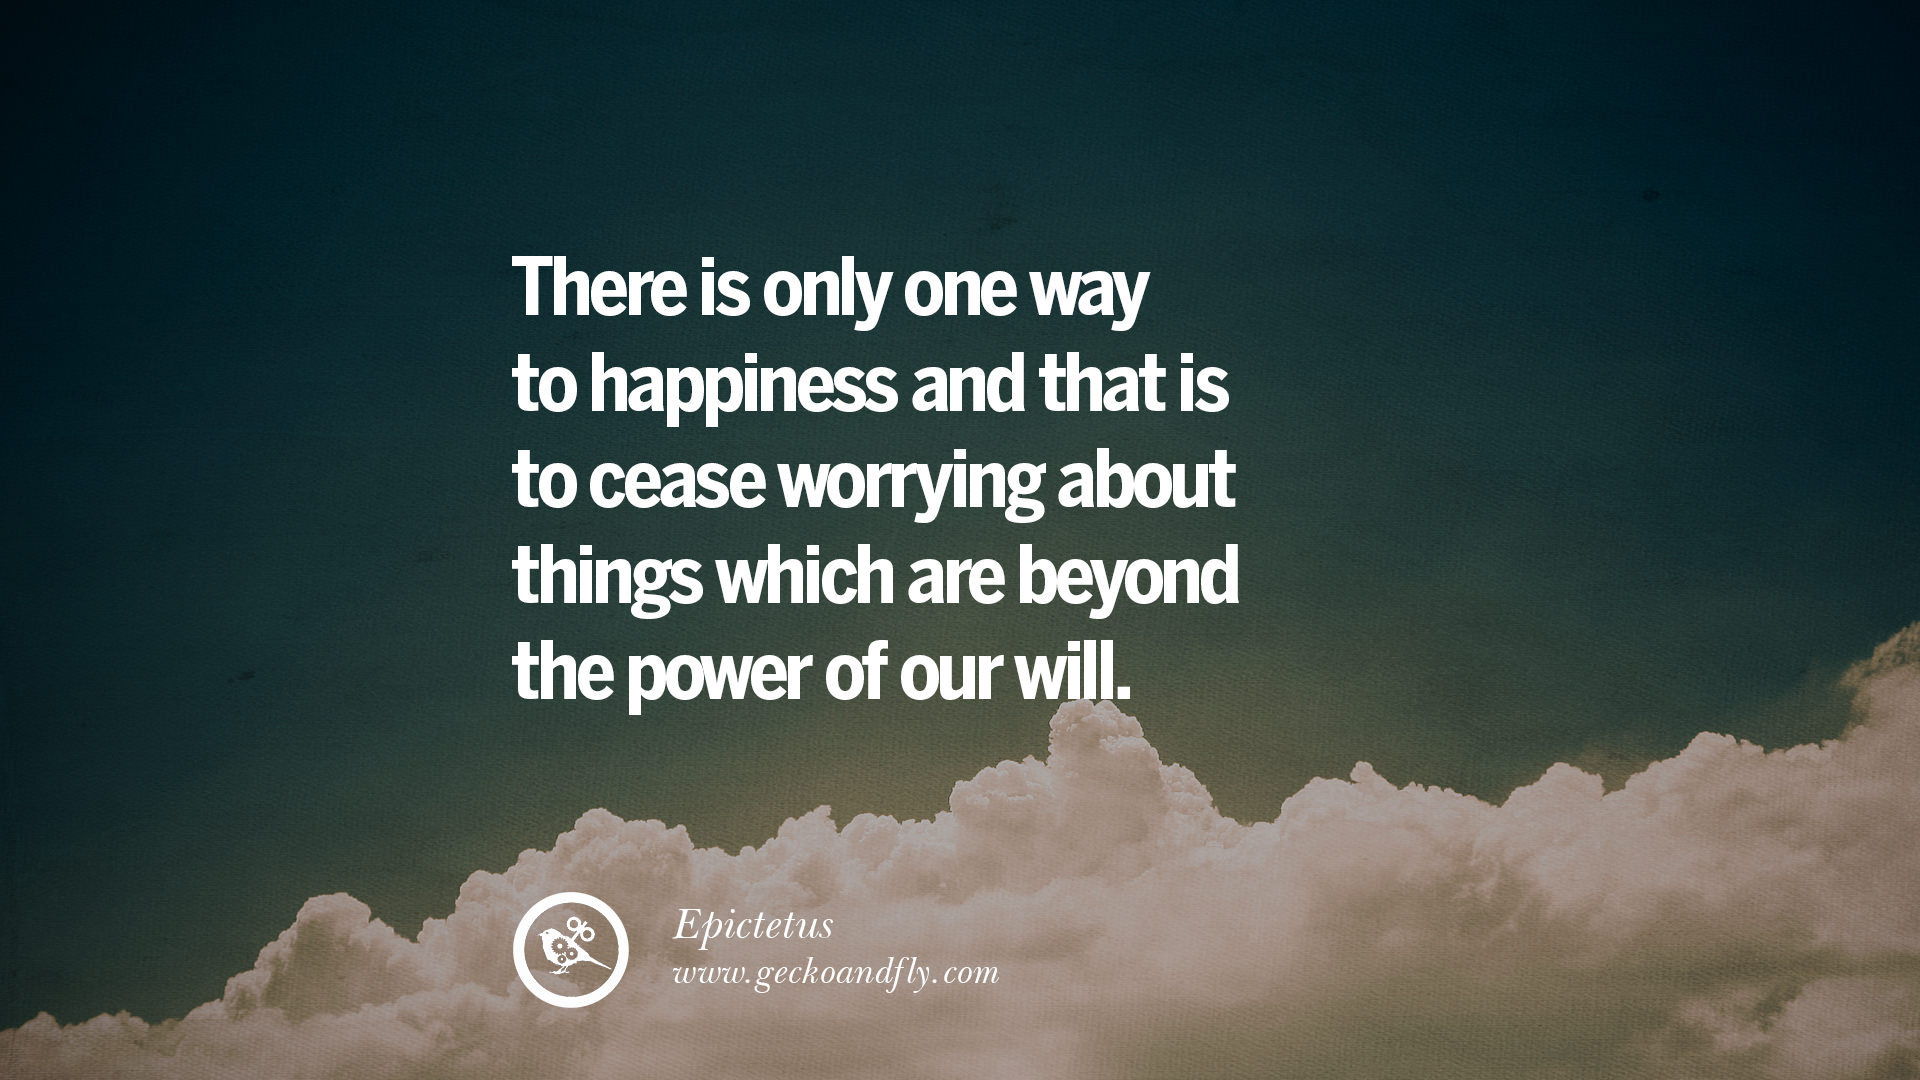 Quotes On Happiness 21 Quotes About Pursuit Of Happiness To Change Your Thinking